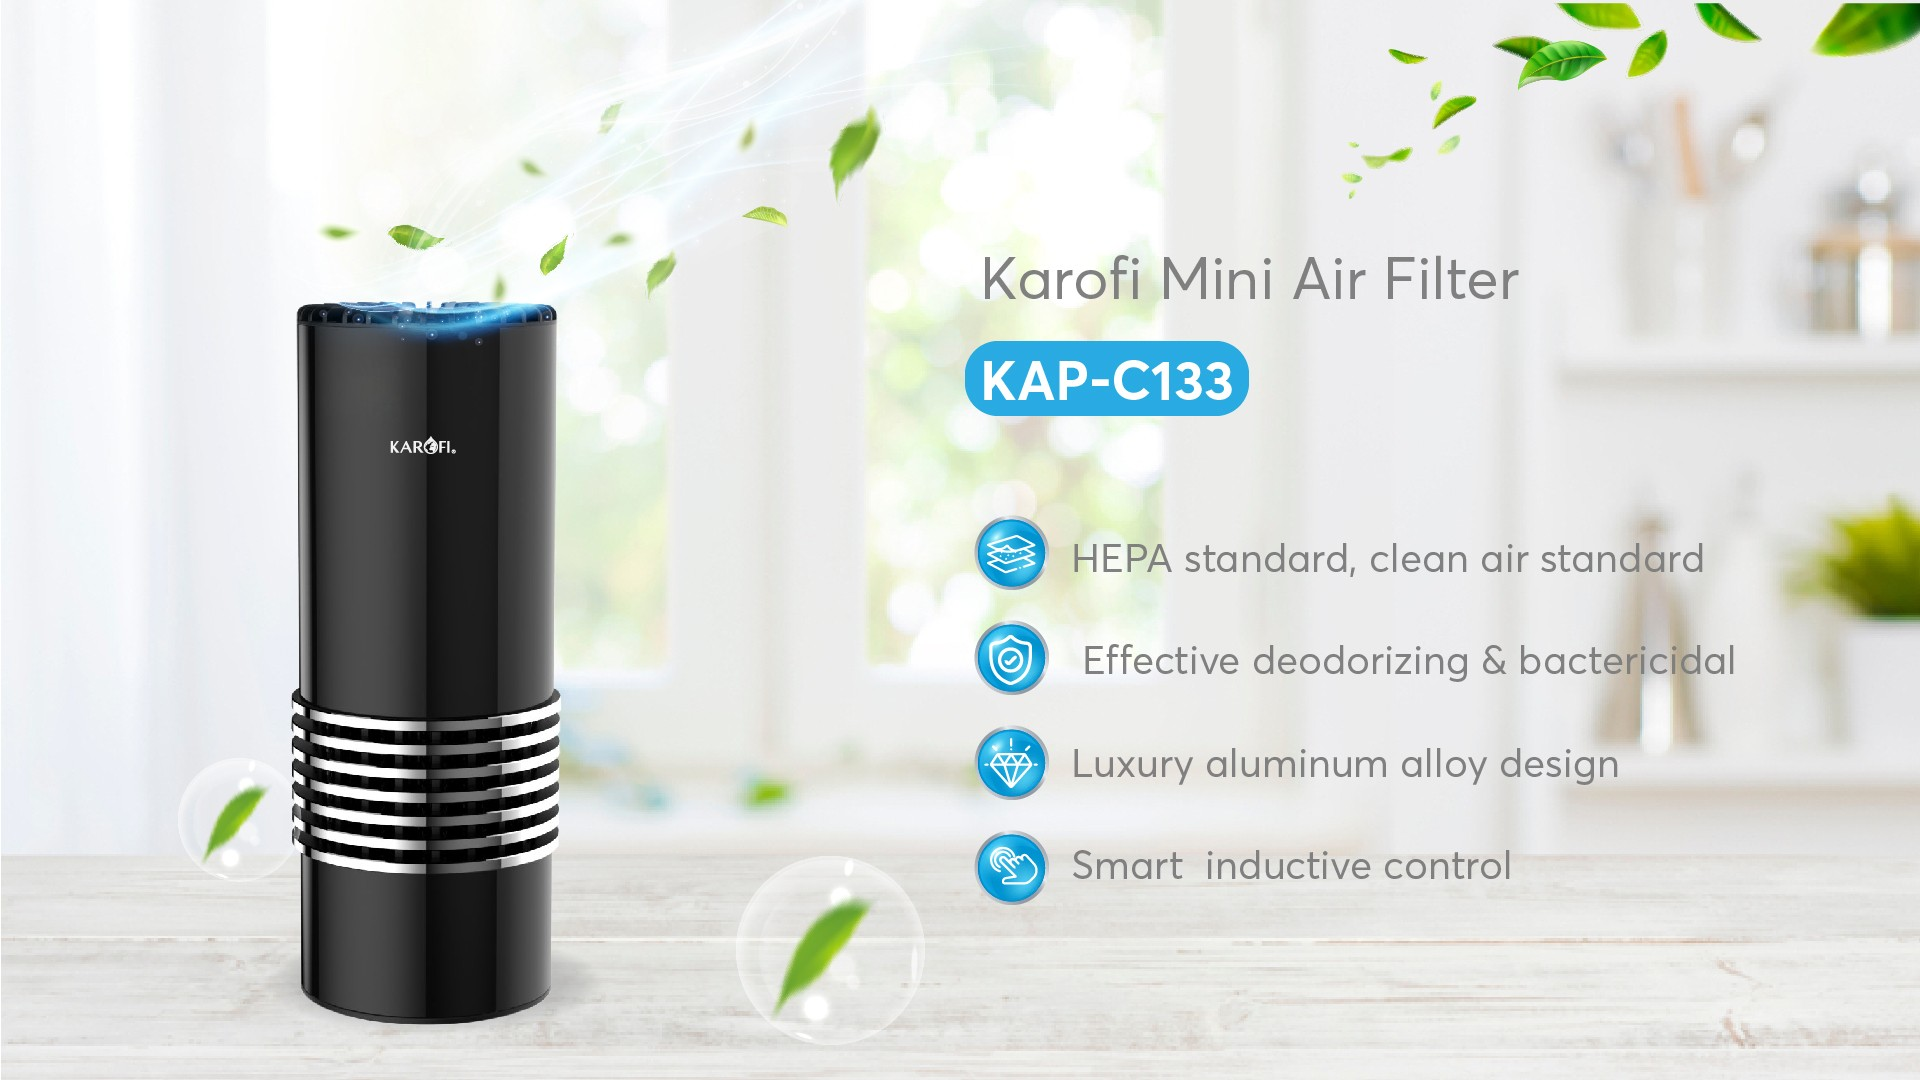 karofi-kap-c123-mini-air-filter-3